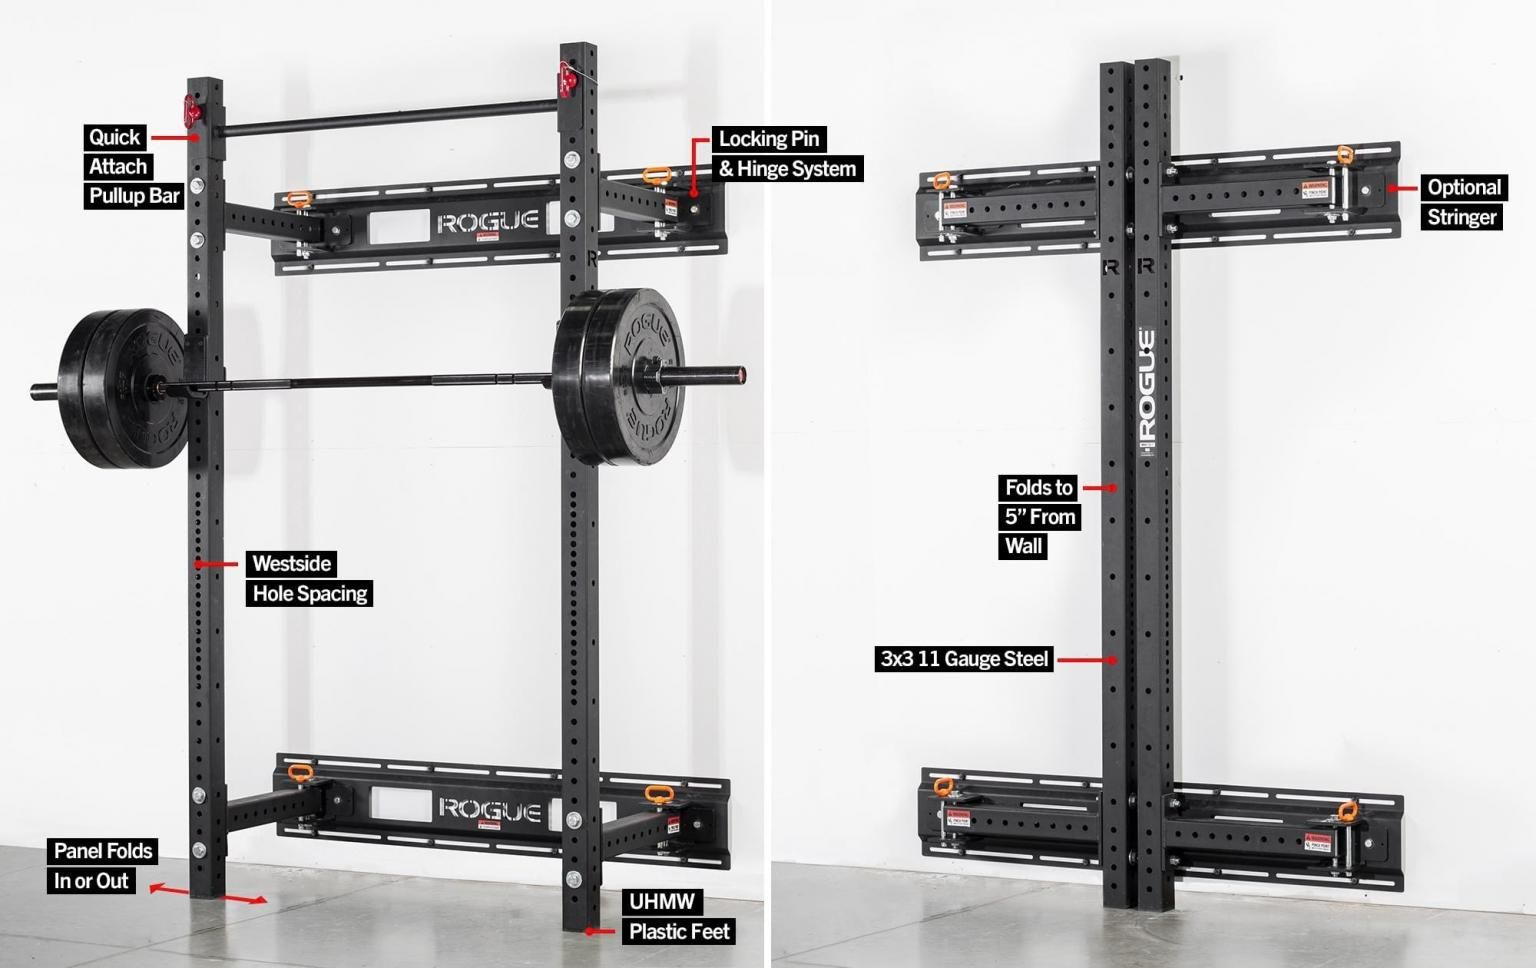 Rogue Rml 3w Fold Back Wall Mount Power Rack Great Space Saving Technology For Your Garage Gym Wall Mount Rack Home Gym Garage Home Gym Design